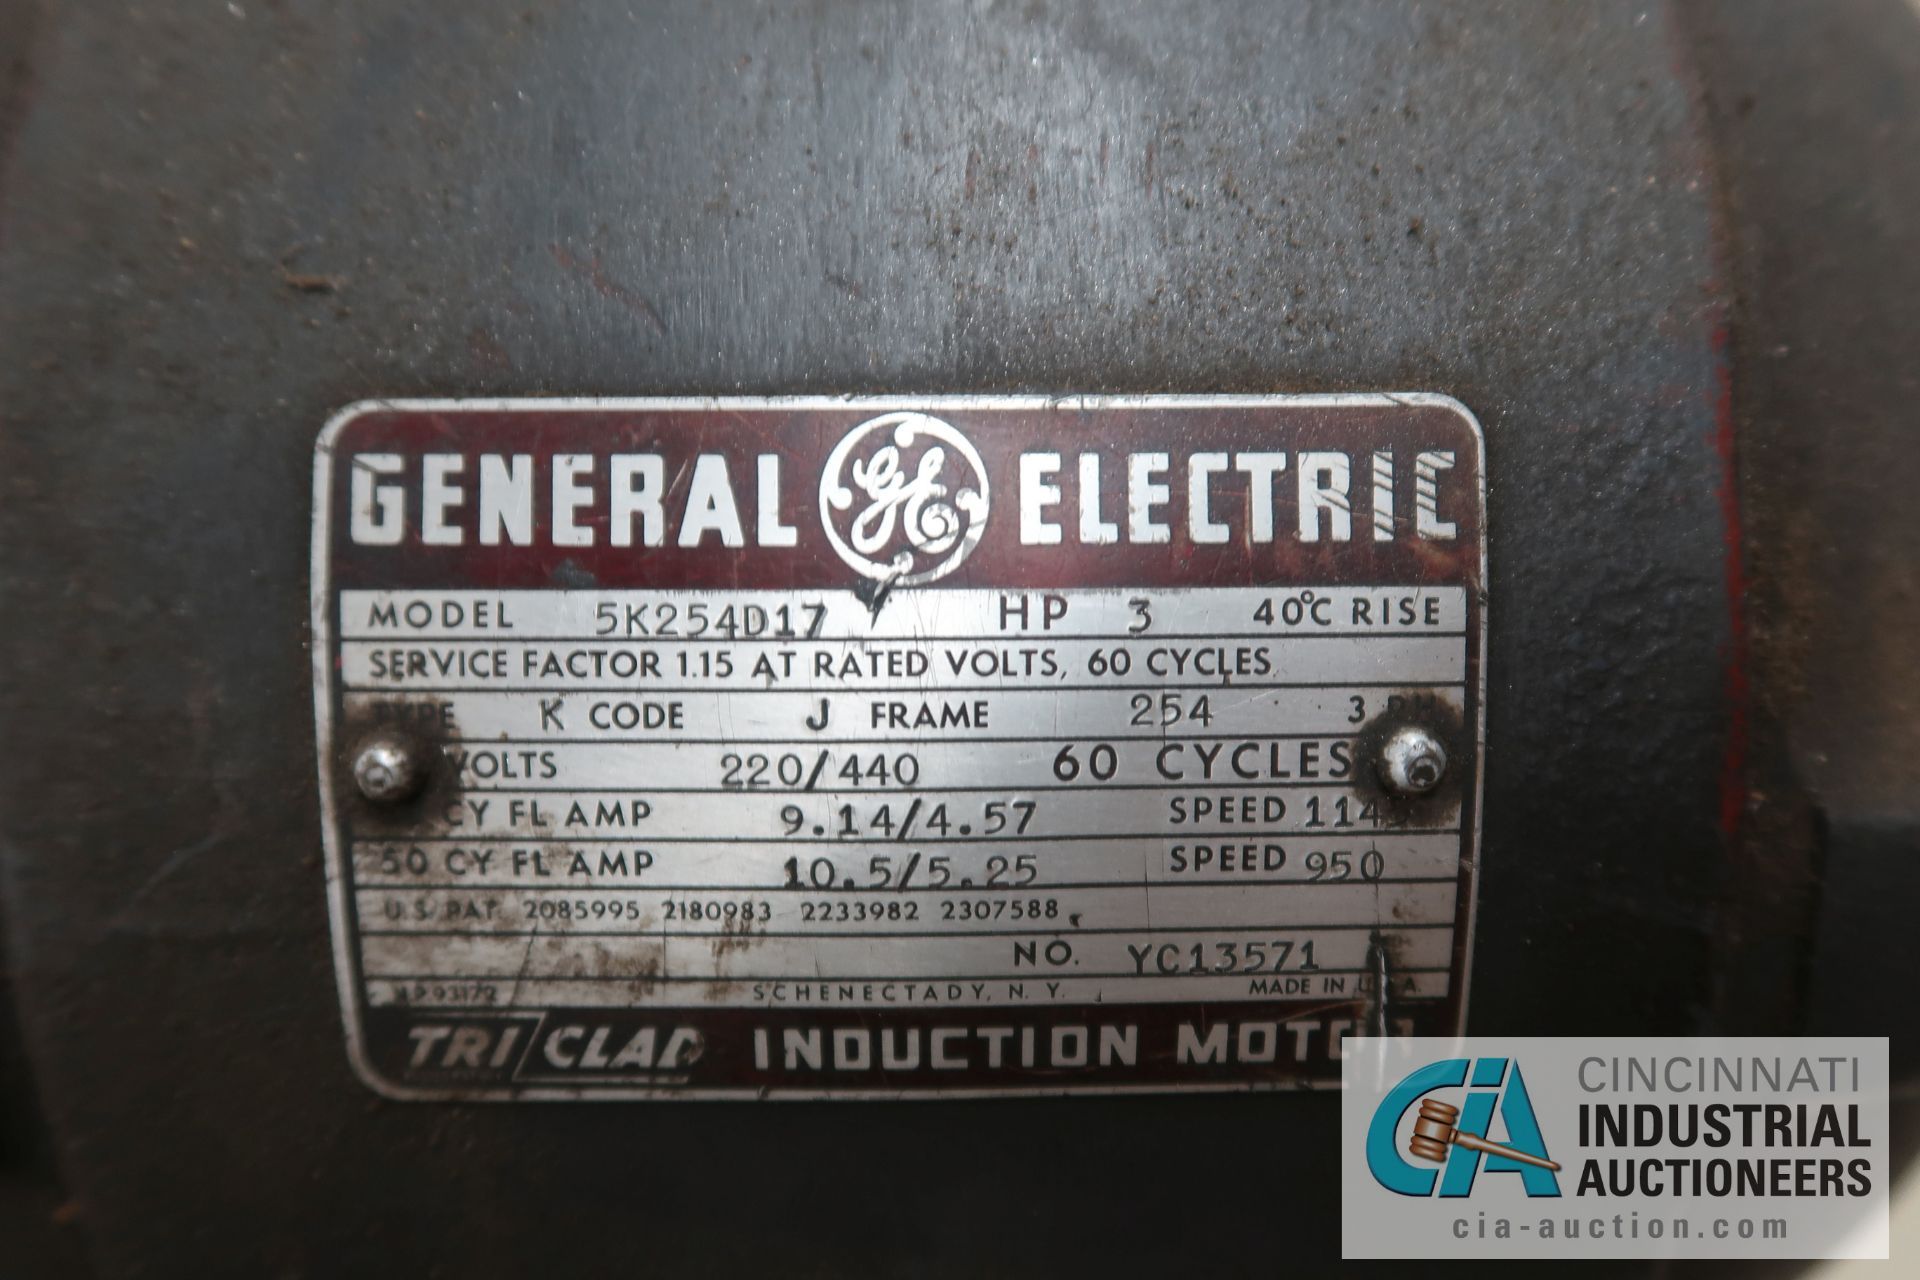 6' X 16 GAUGE MAX WYSONG SHEAR; S/N N/A, 3 HP ELECTRIC MOTOR, MANUAL CRANK BACKGAUGE - Image 8 of 8